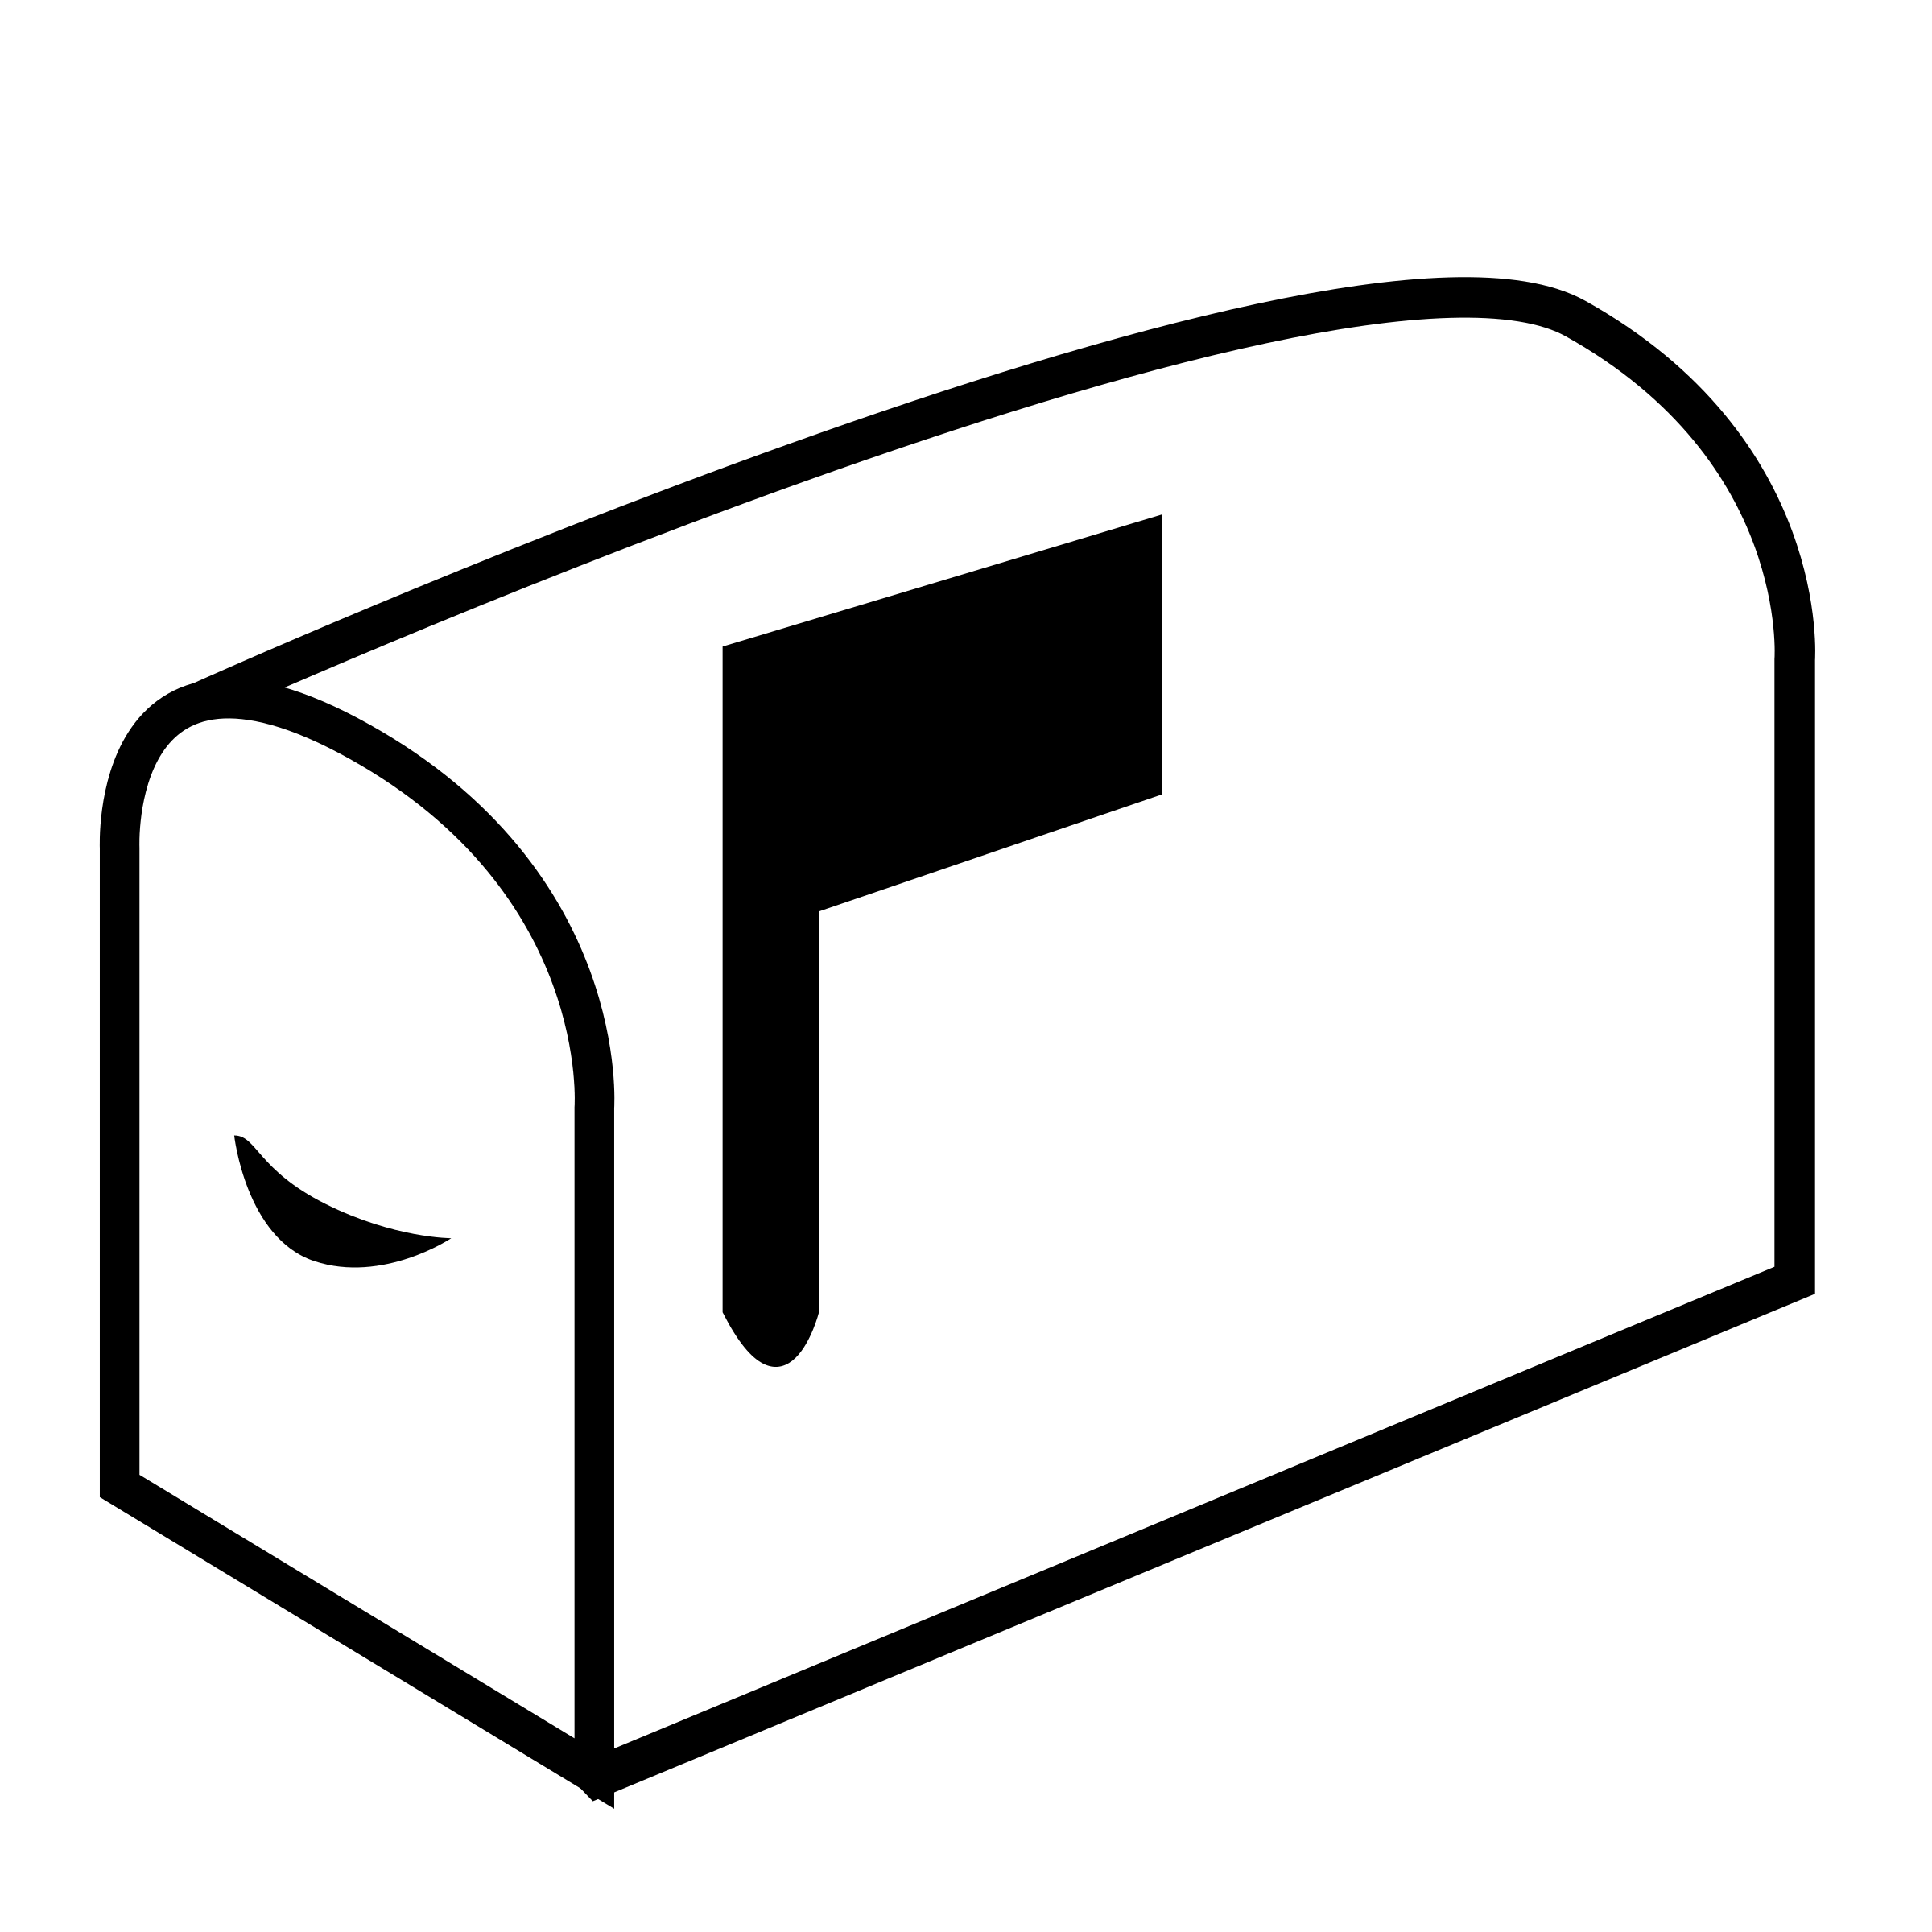 Mail Box Images